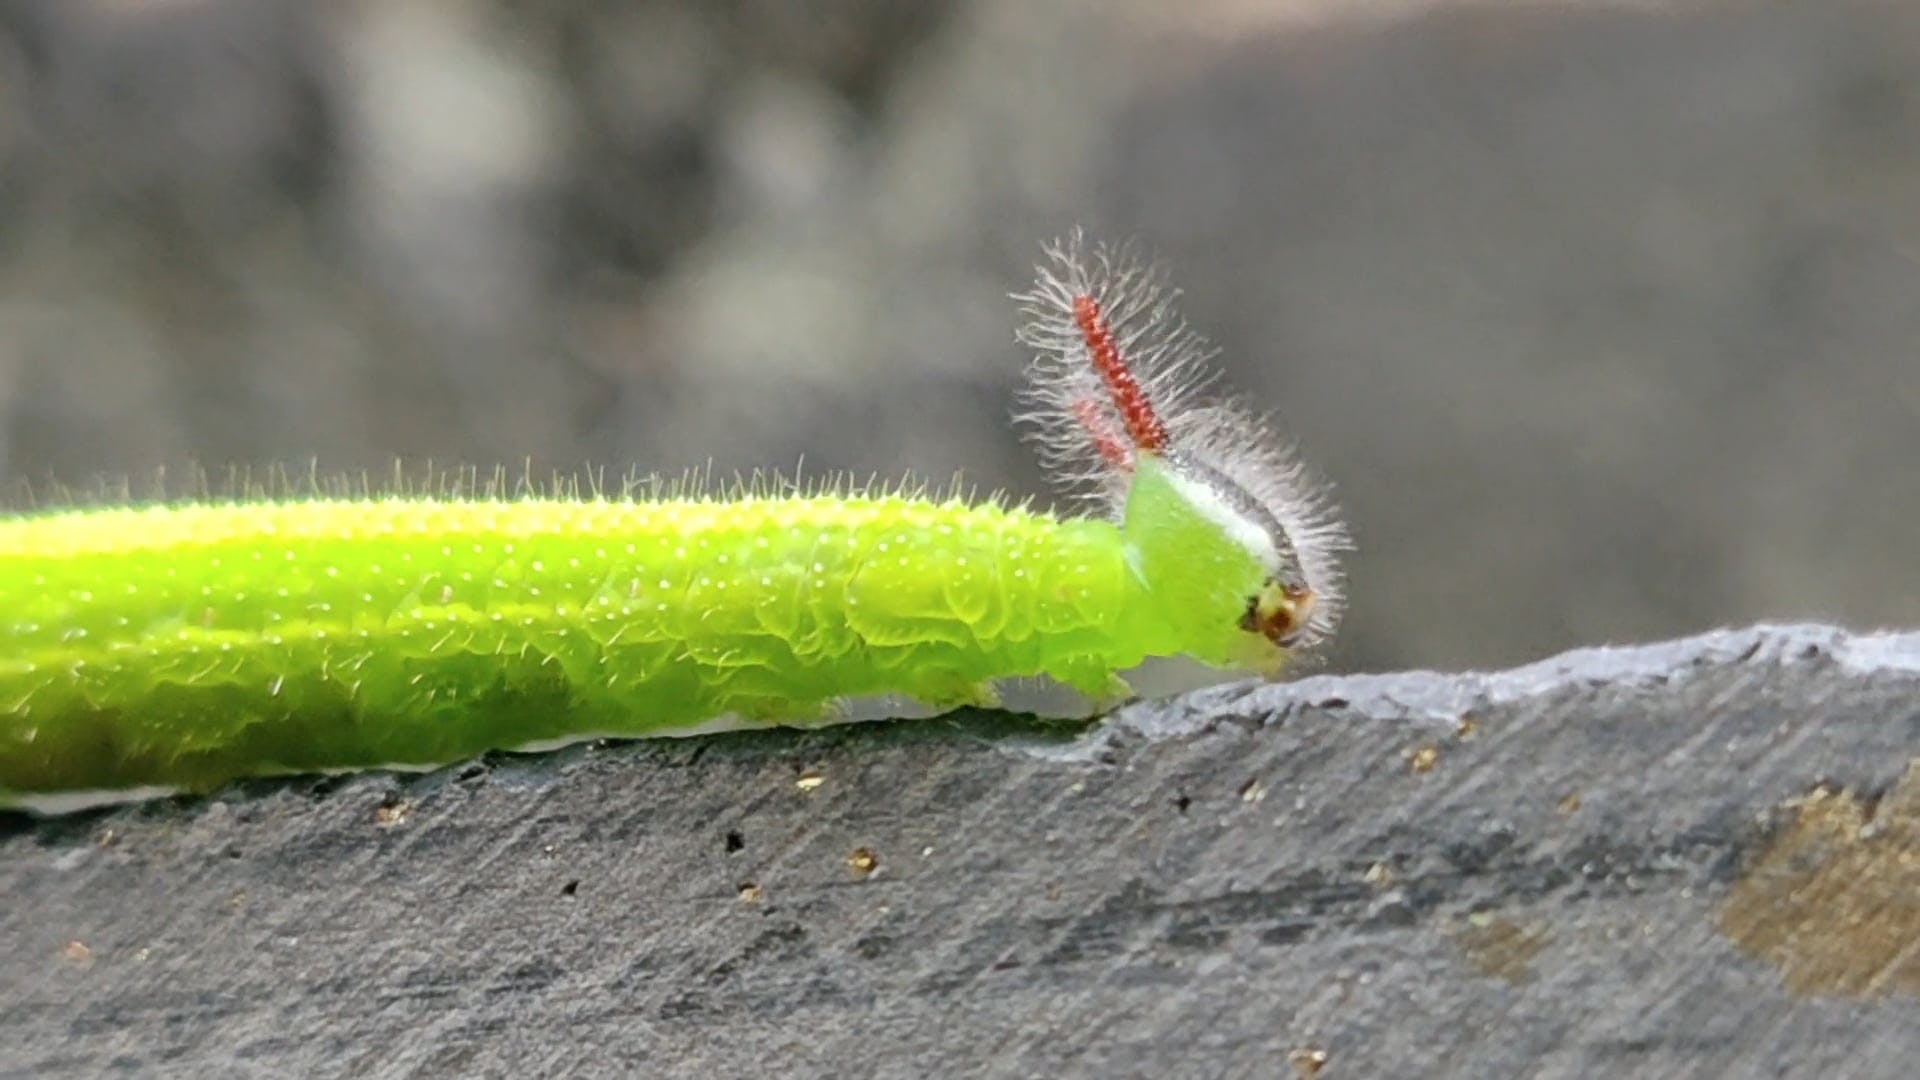 Close-Up Of A Green Worm